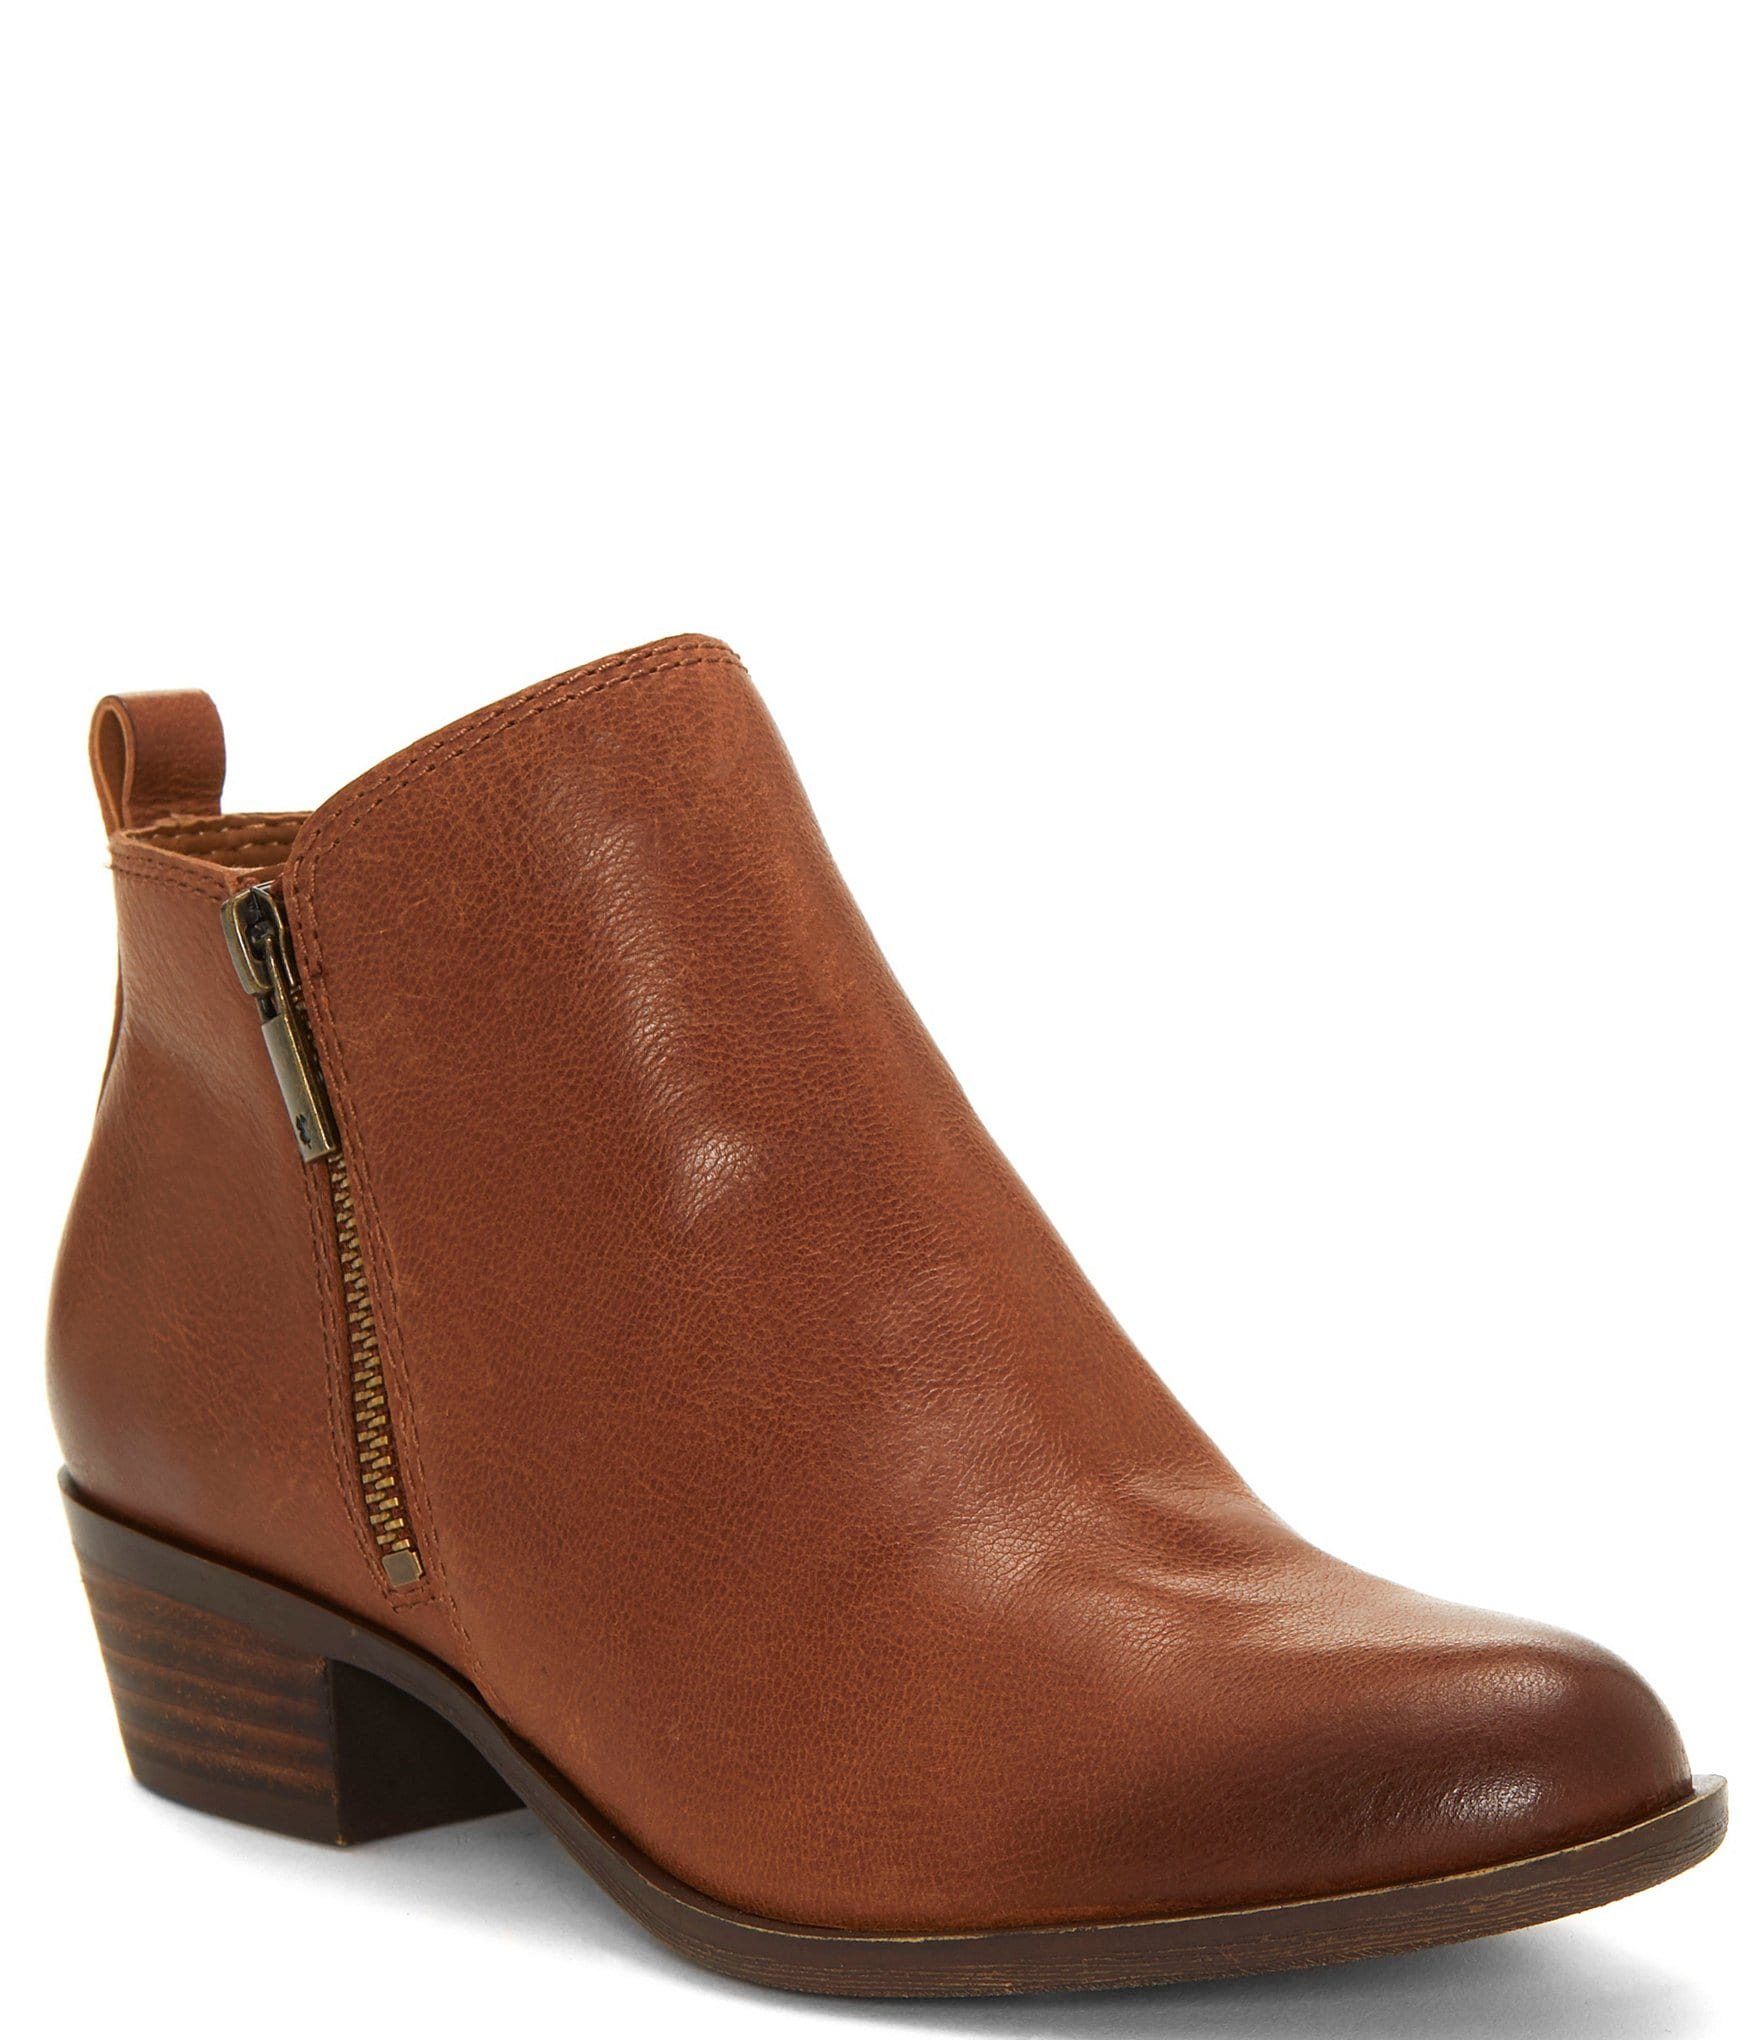 Lucky Brand Shoes Reviews